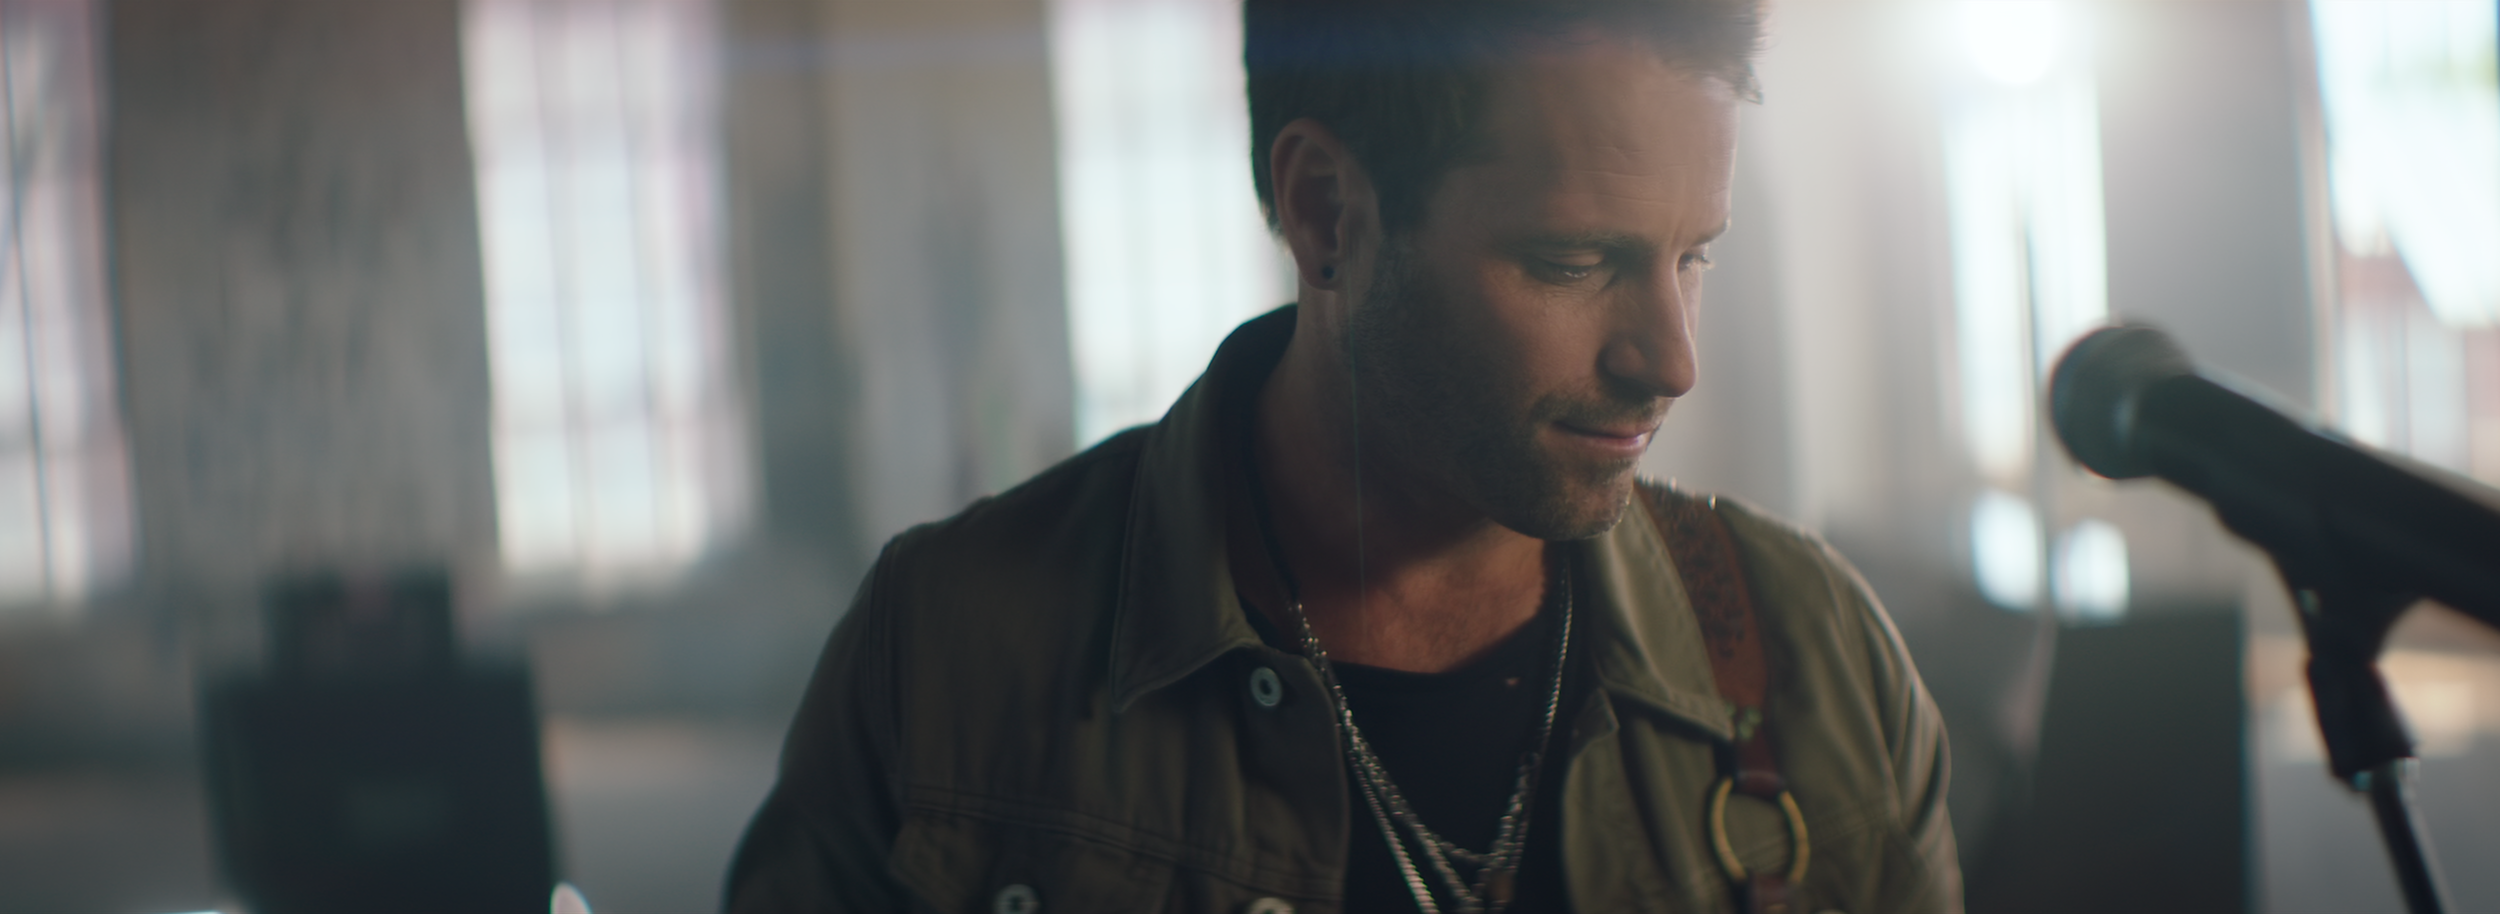 Parmalee-SundayMorning-51.png